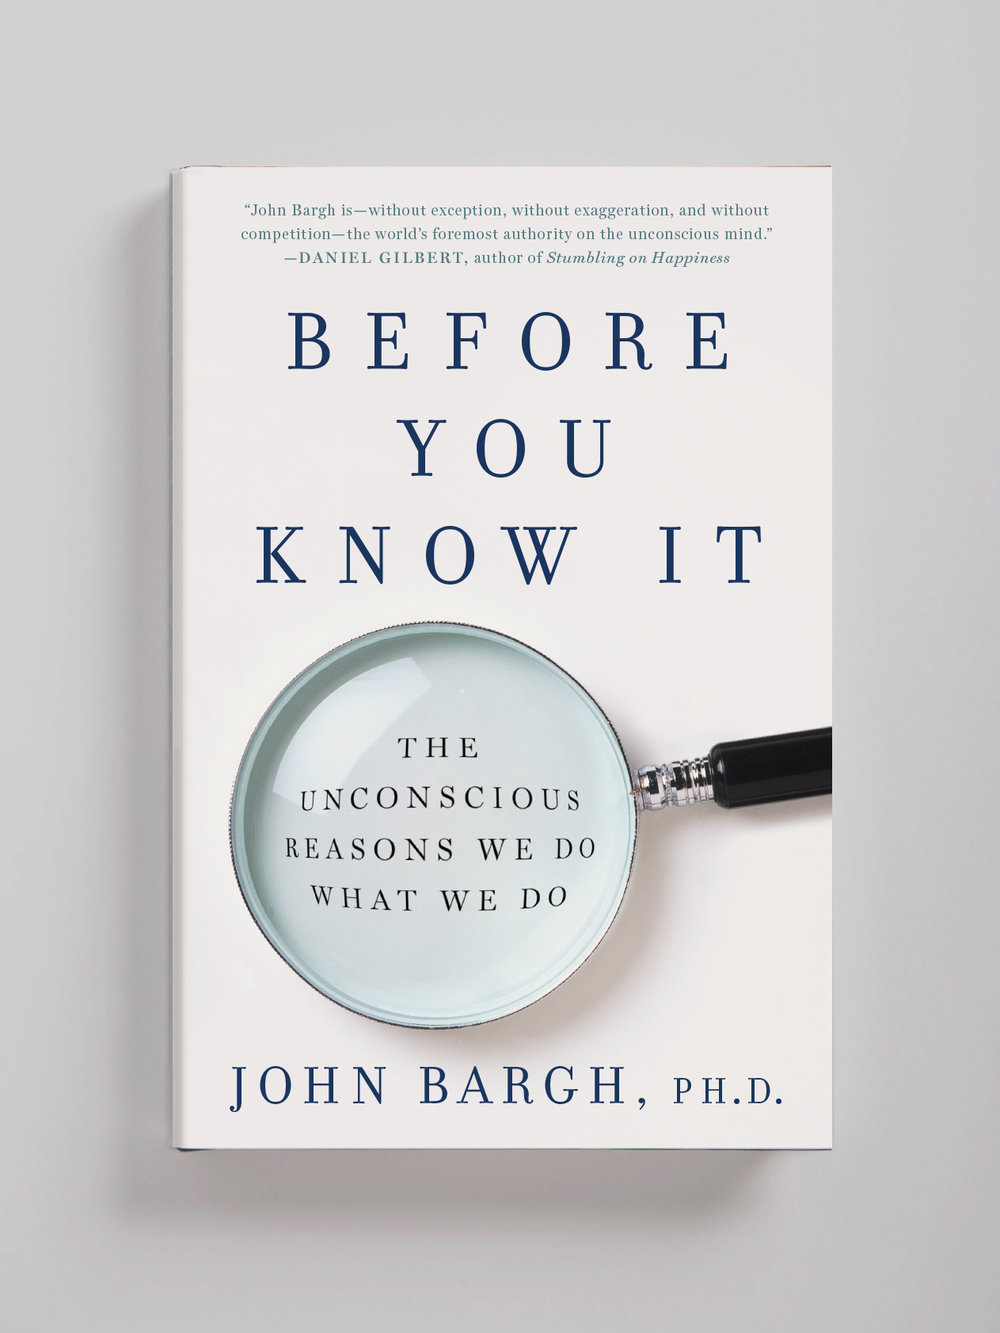 Before You Know It—John Bargh